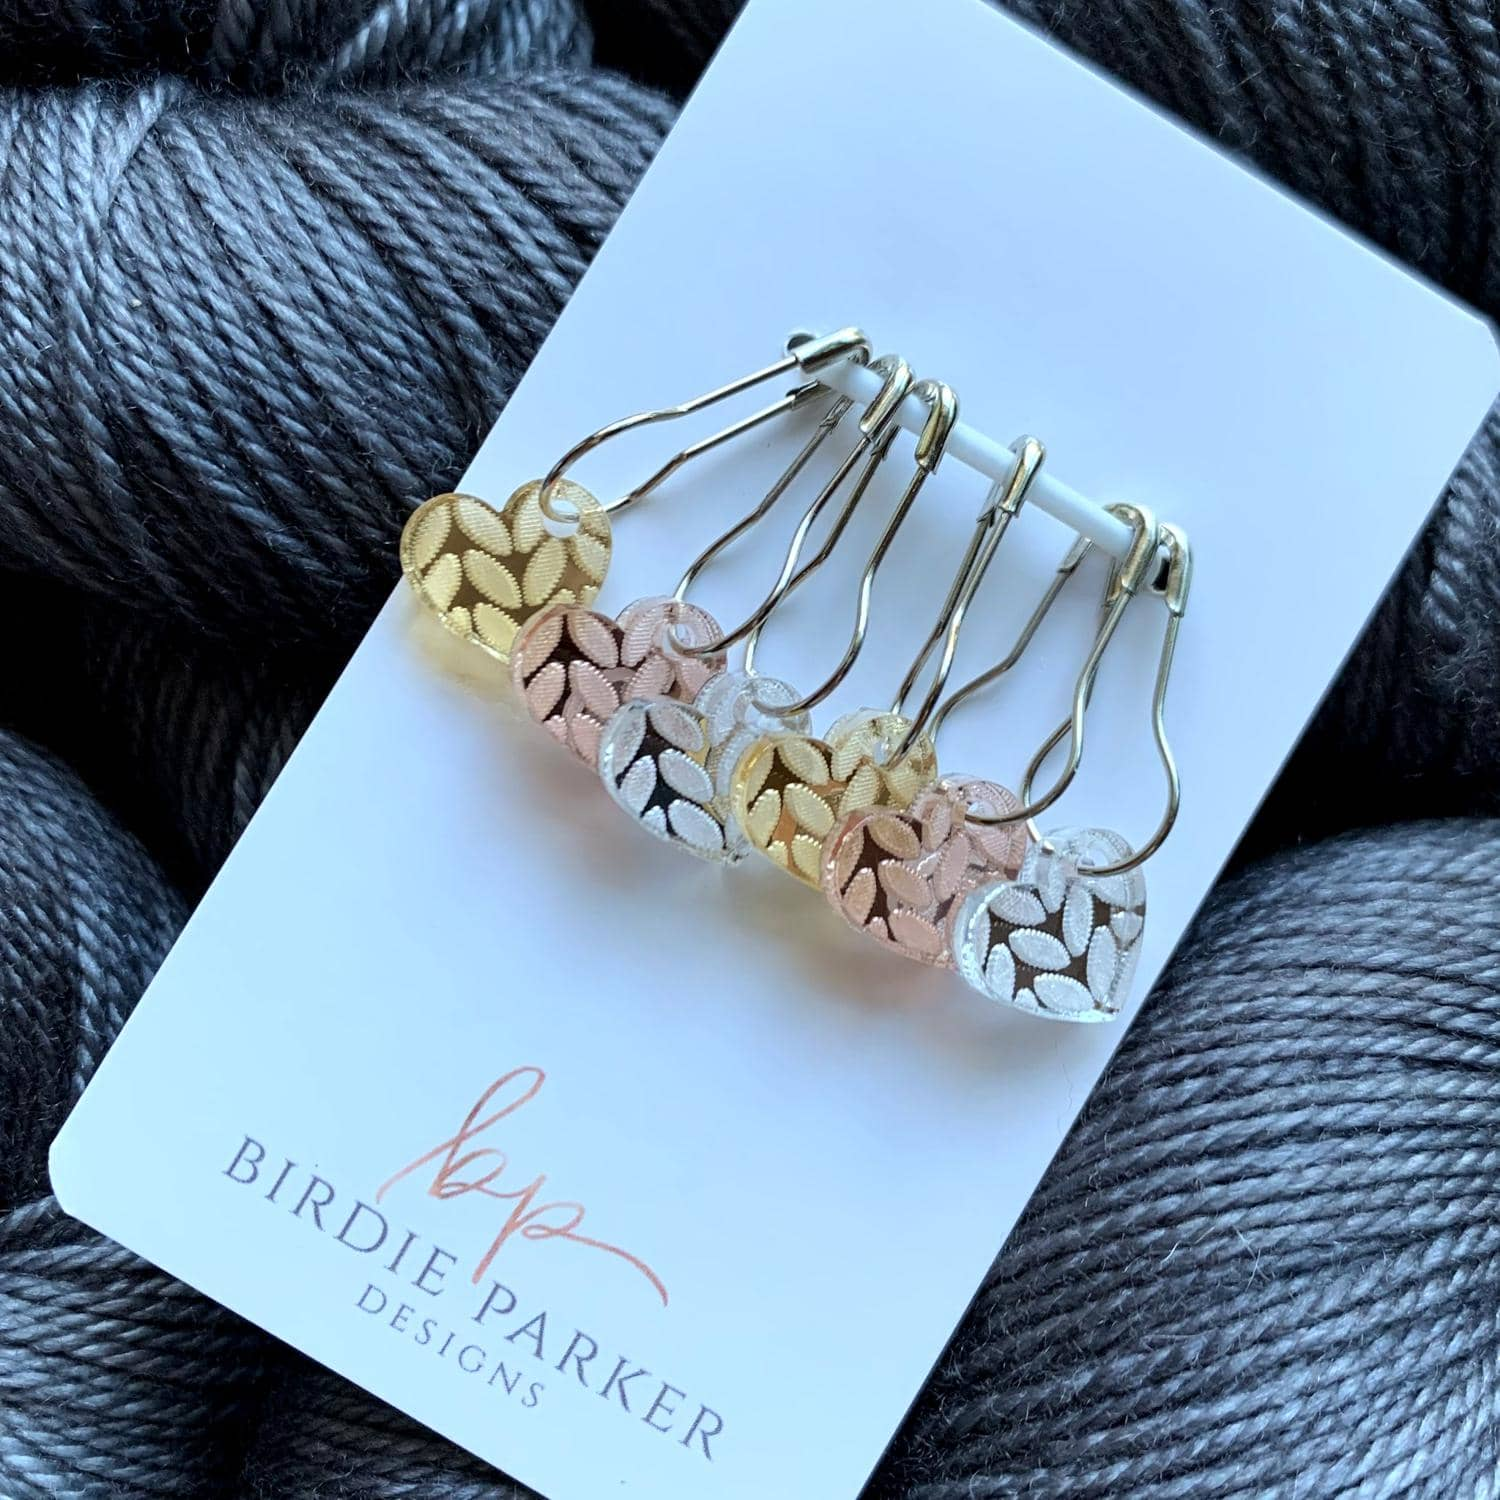 Birdie Parker Designs - Metallic Georgia Stitch Markers | Yarn Worx